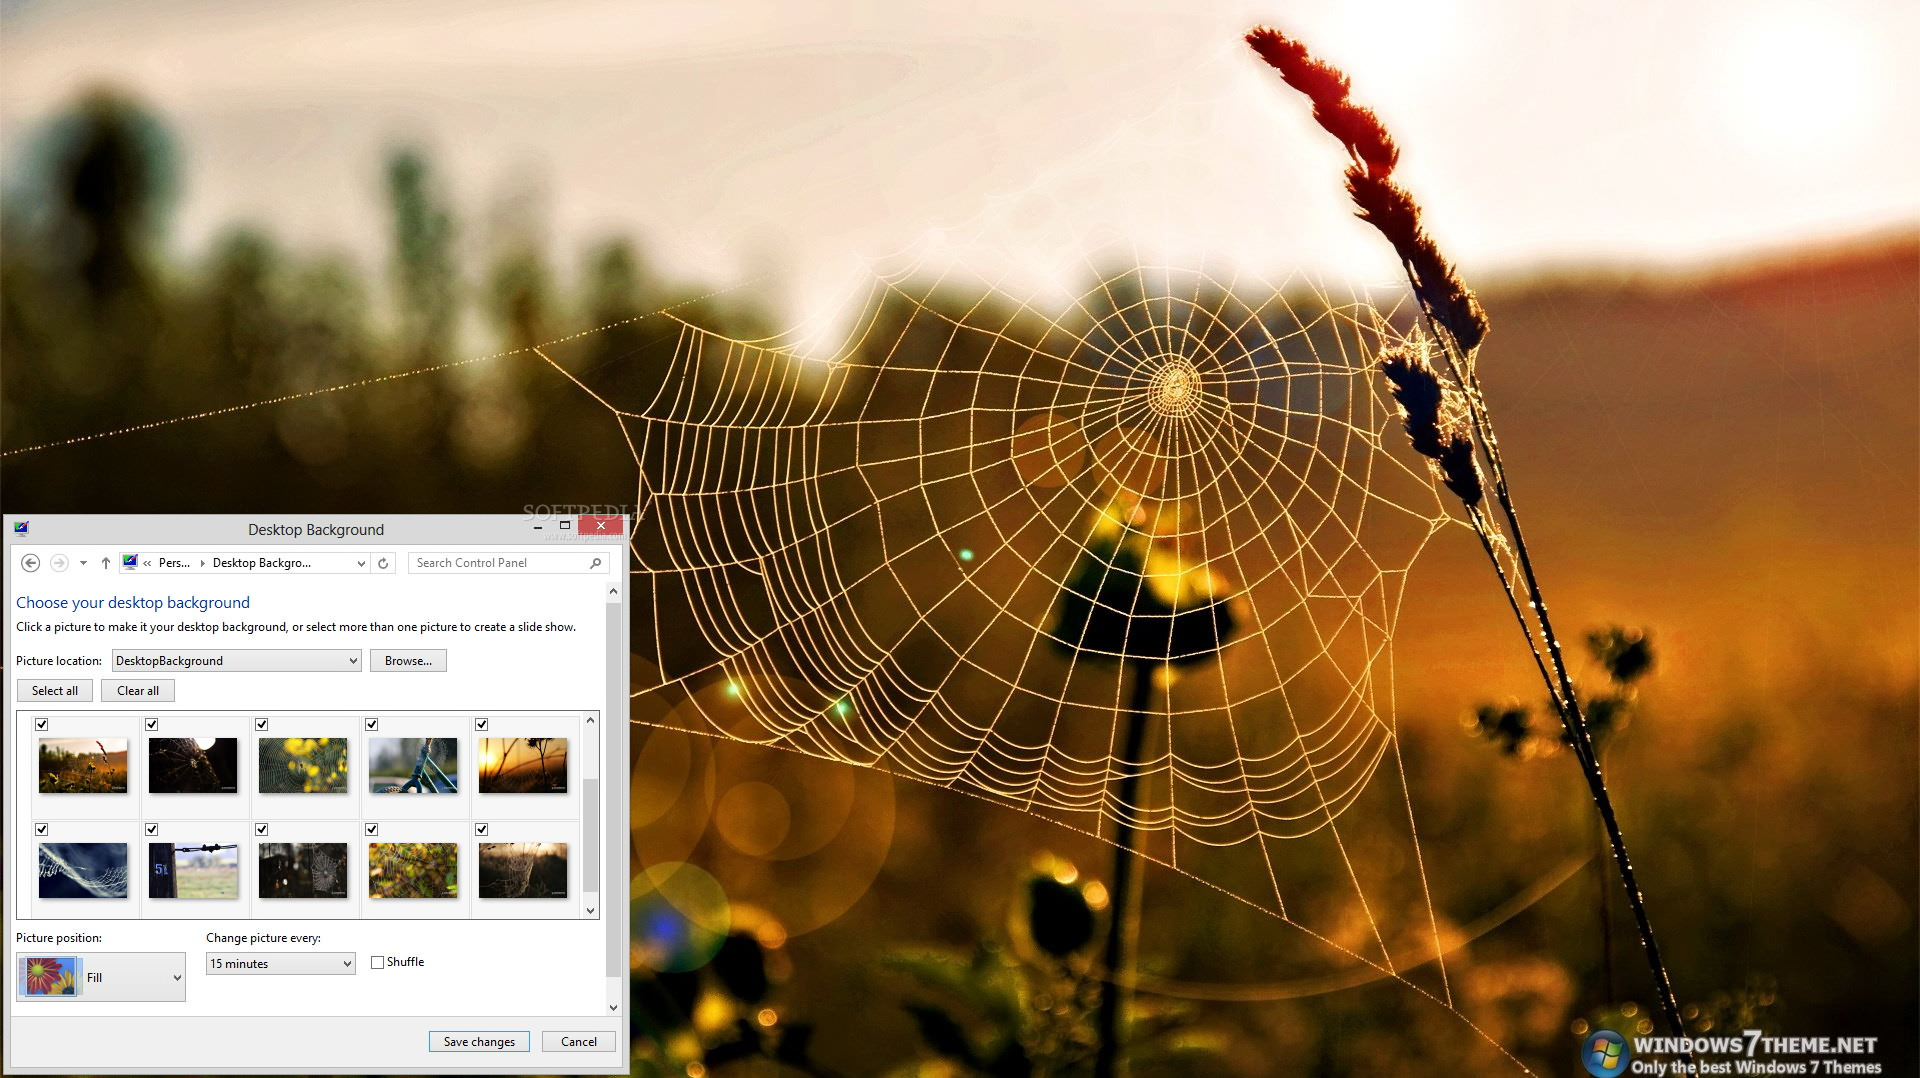 Cobweb Windows 7 Theme